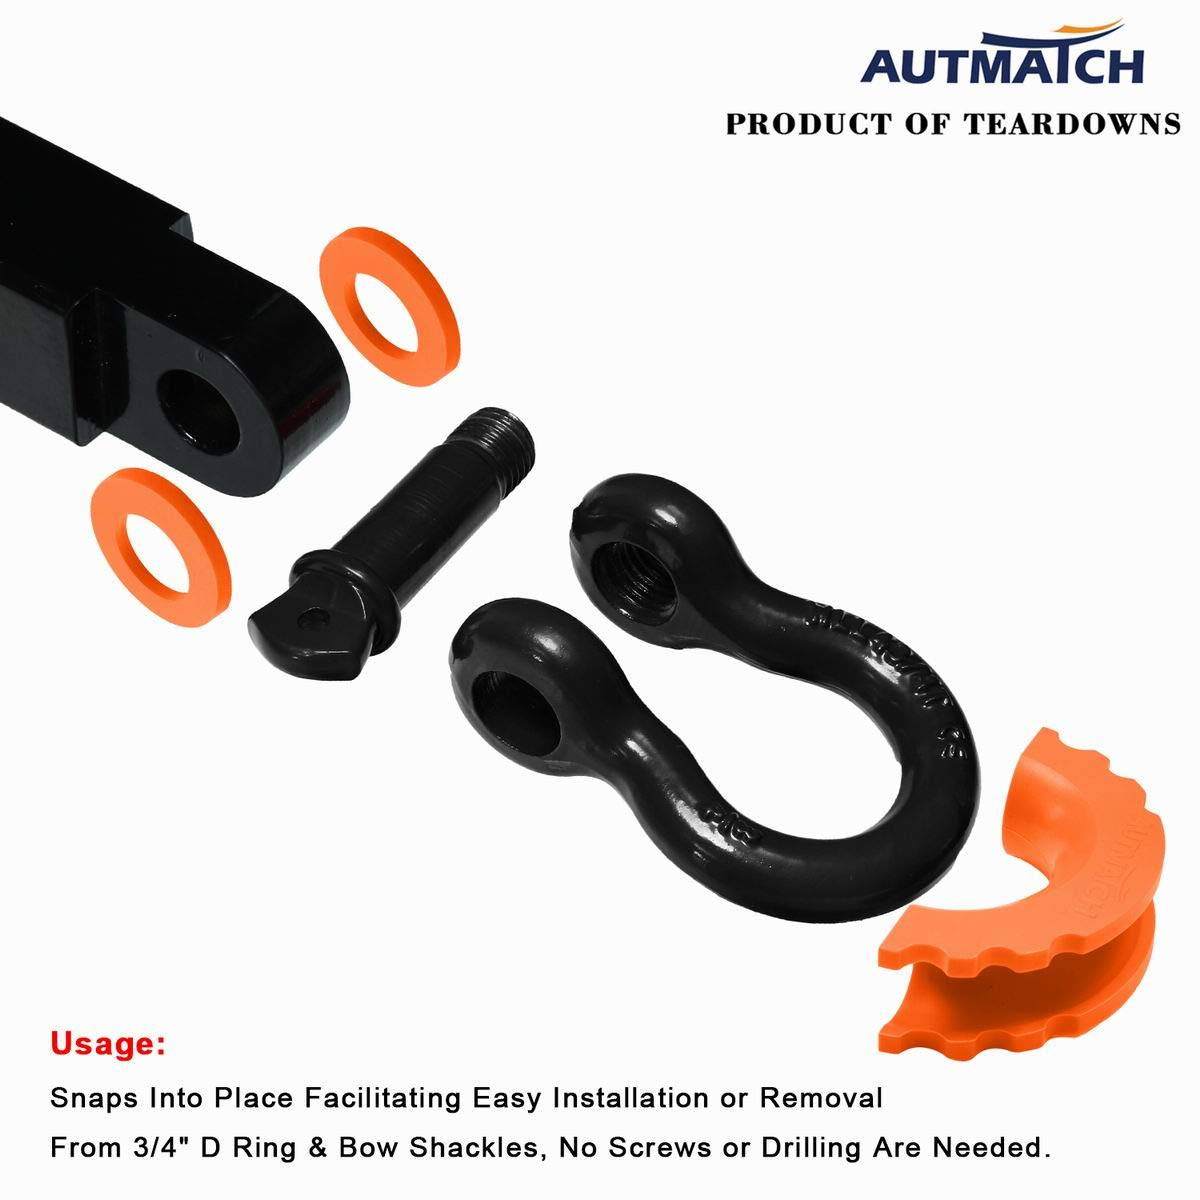 AUTMATCH Pack of 2 D-Ring Shackle Isolators Washers Kit 2 Rubber Shackle Isolators and 4 Washers Fits 3//4 Inch Shackle Gear Design Rattling Protection Shackle Cover Teal